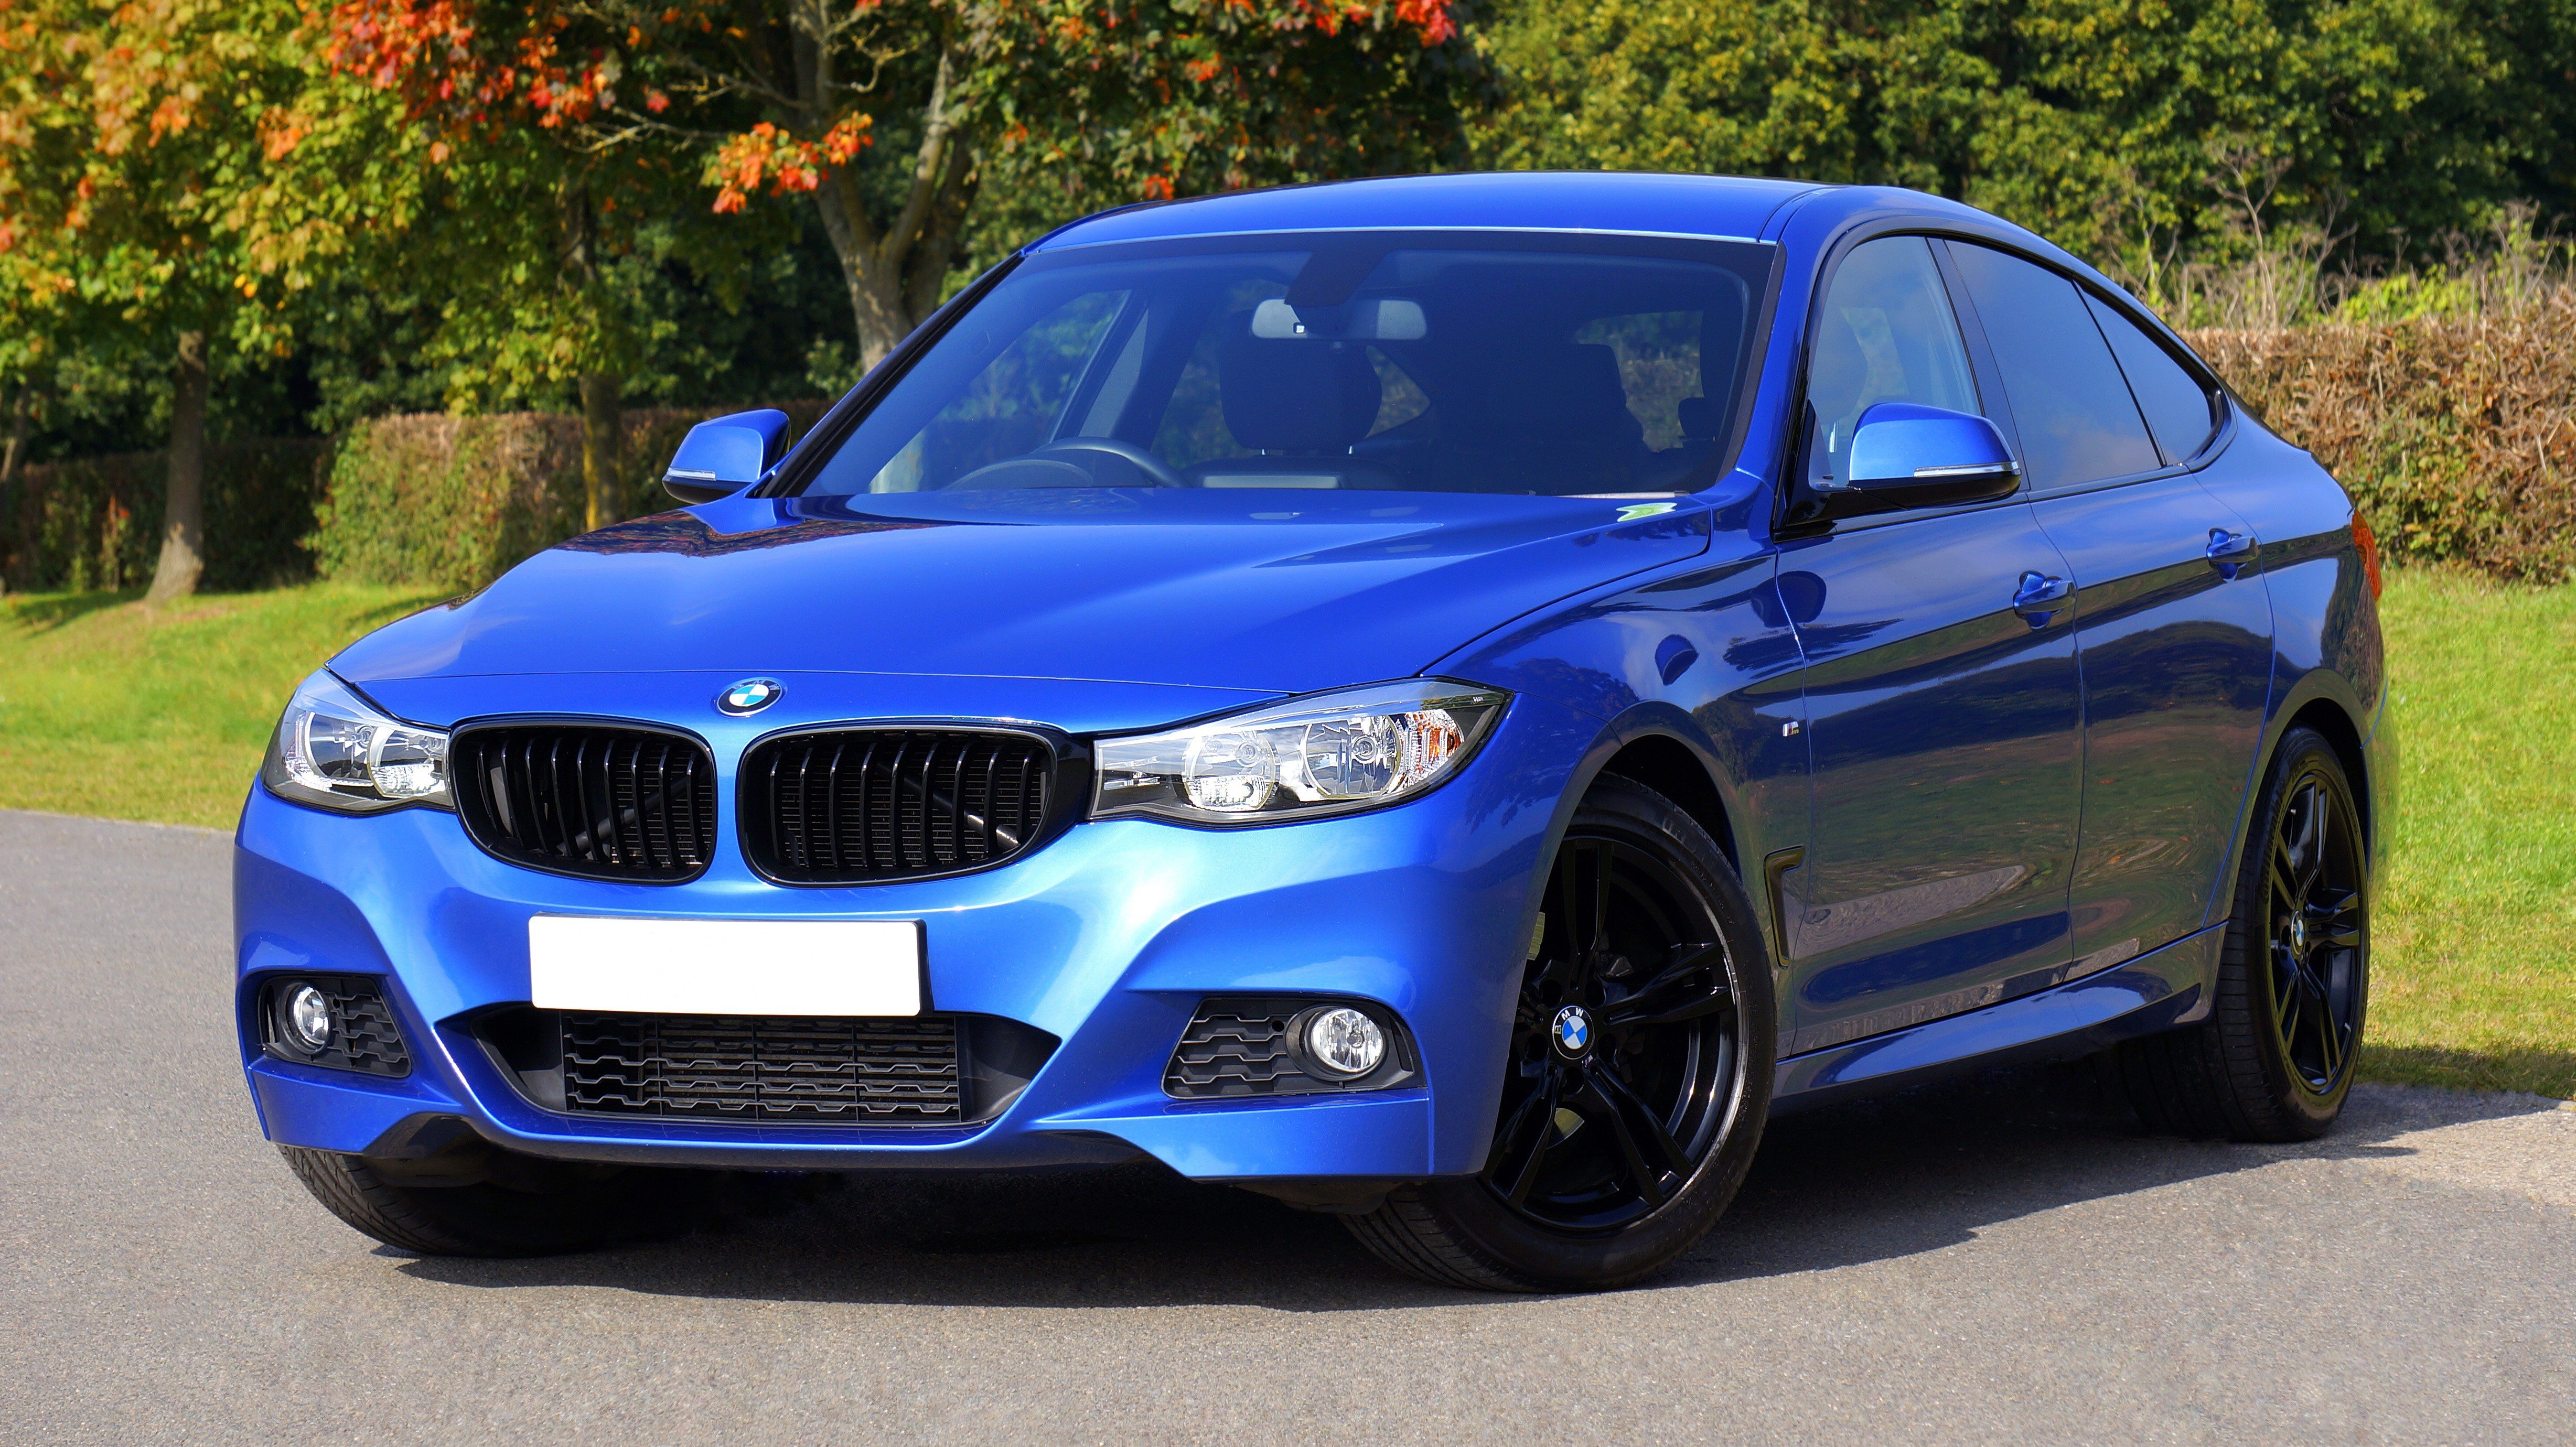 bmw car hd wallpapers desktop and mobile images amp photos